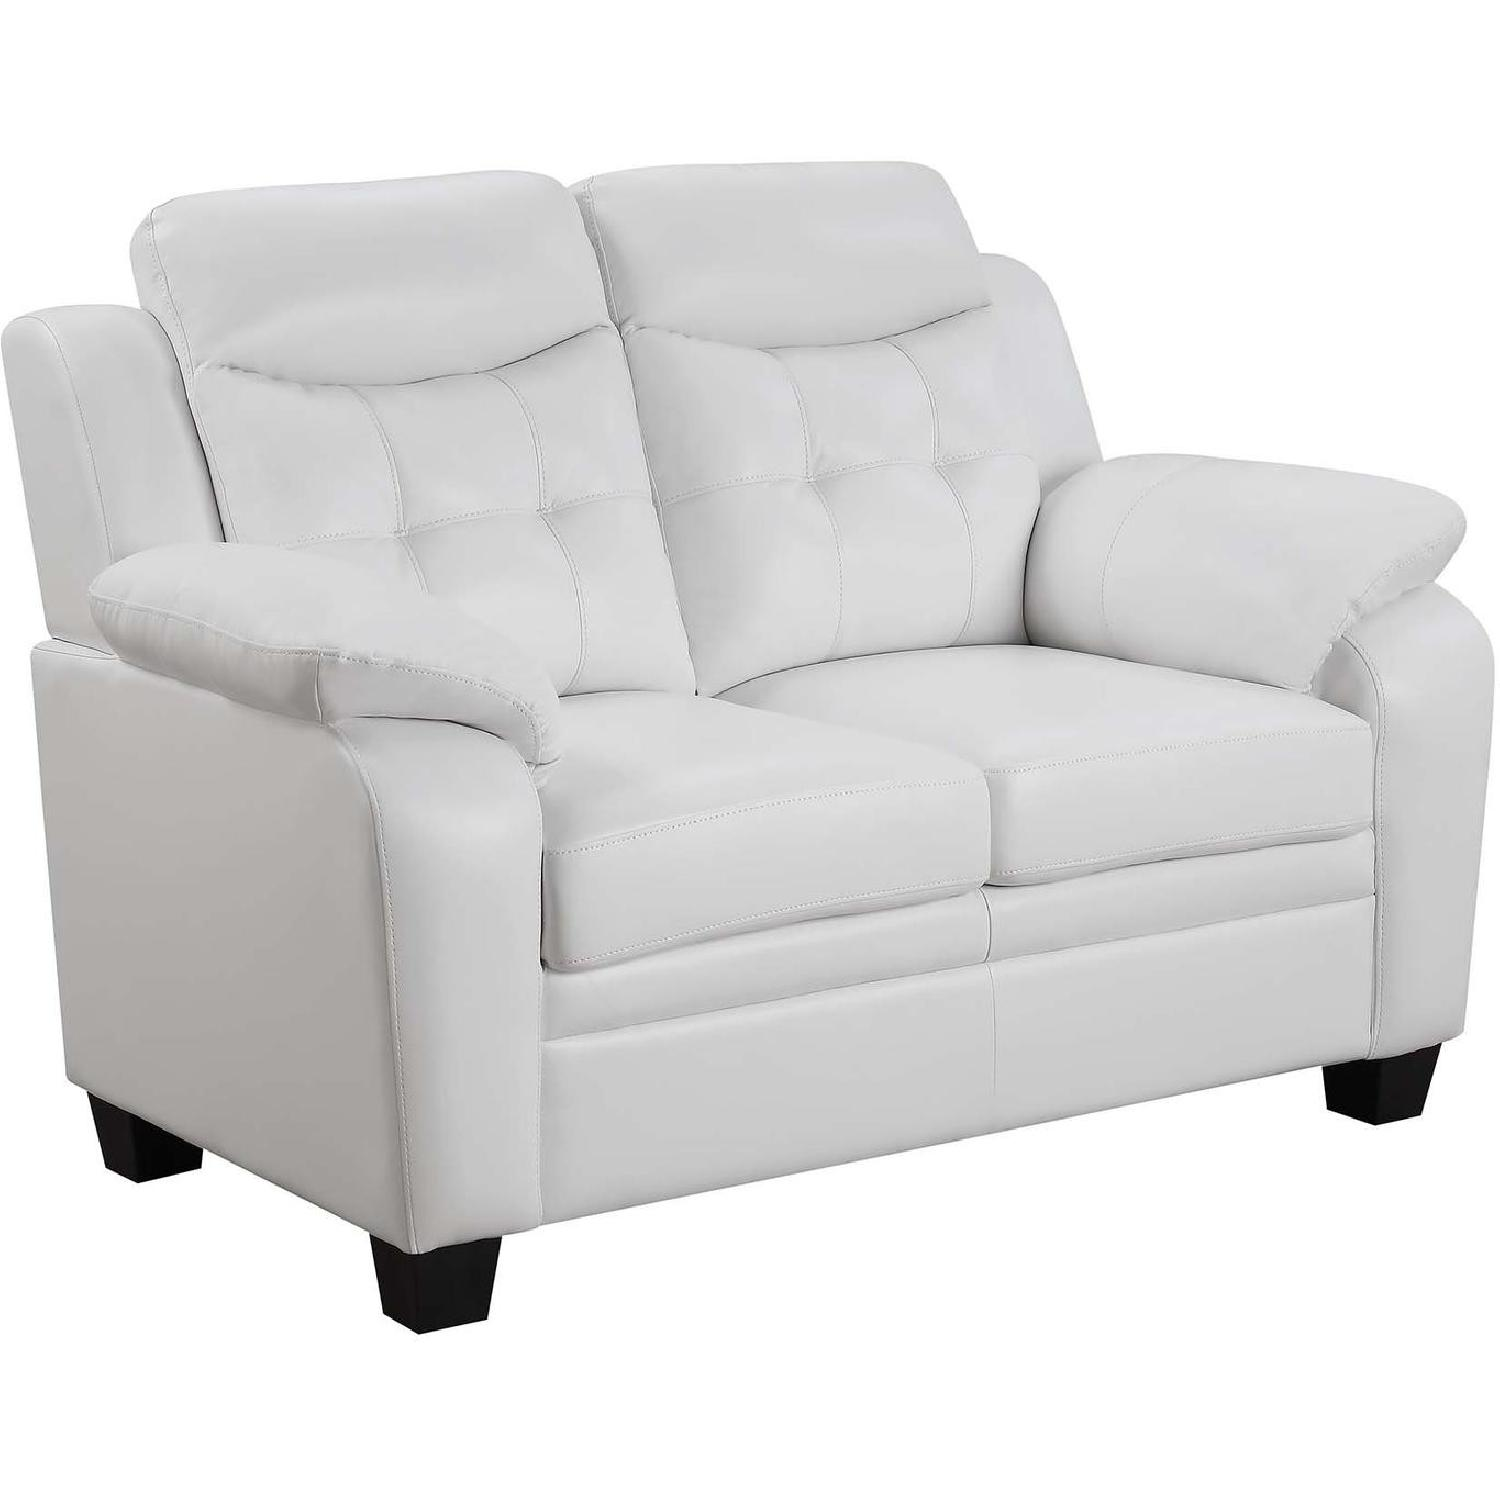 Casual Style Loveseat in White Leatherette w/ Arm & Headrest